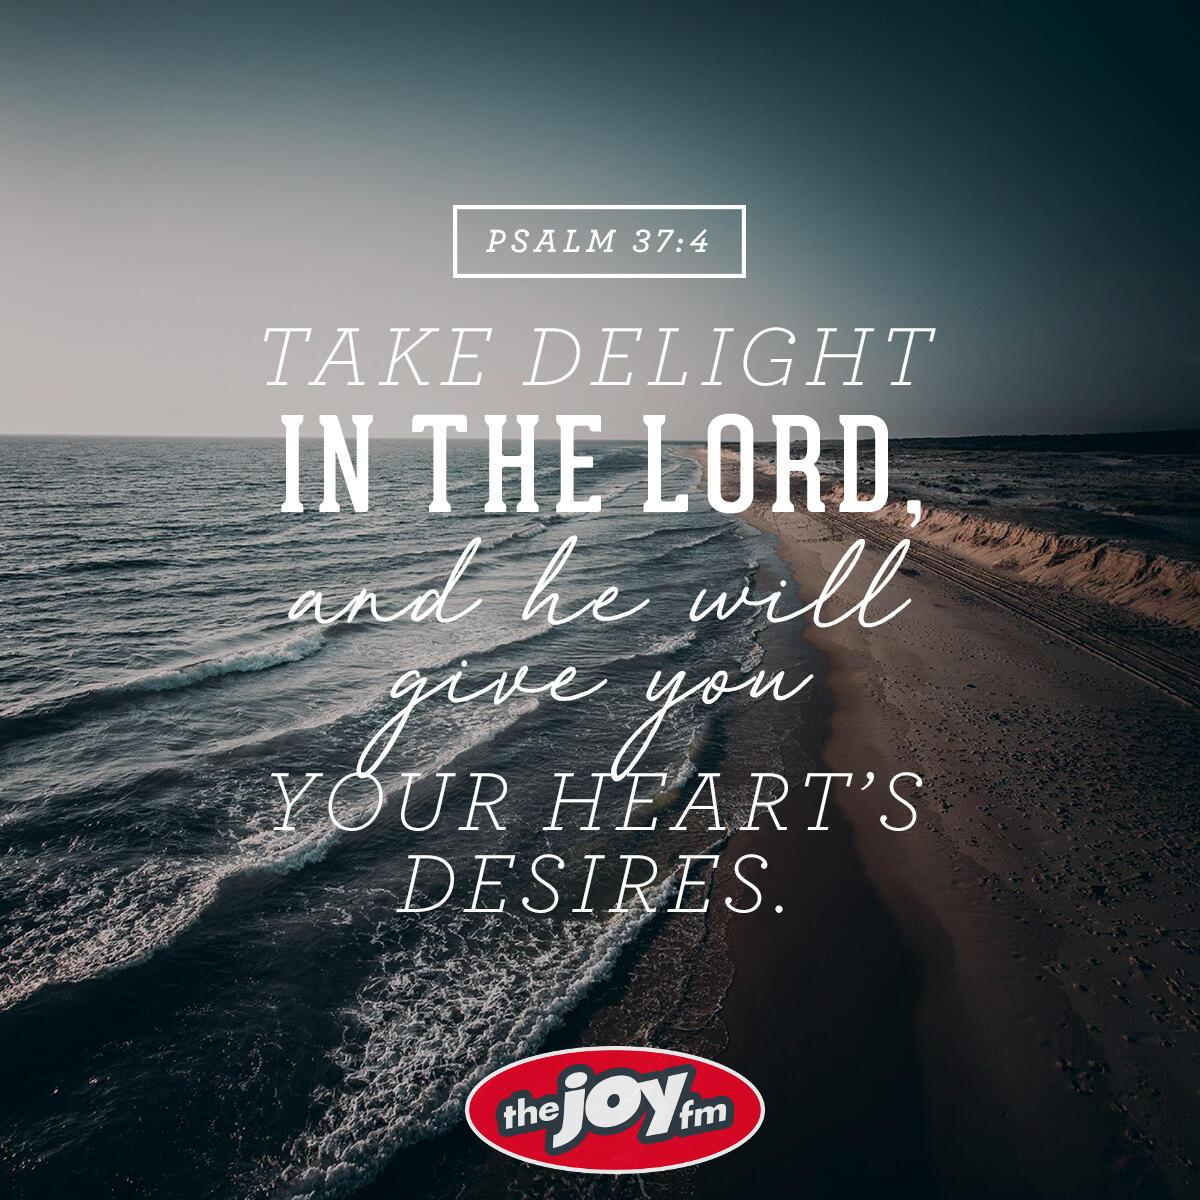 Psalm 37:4 - Verse of the Day